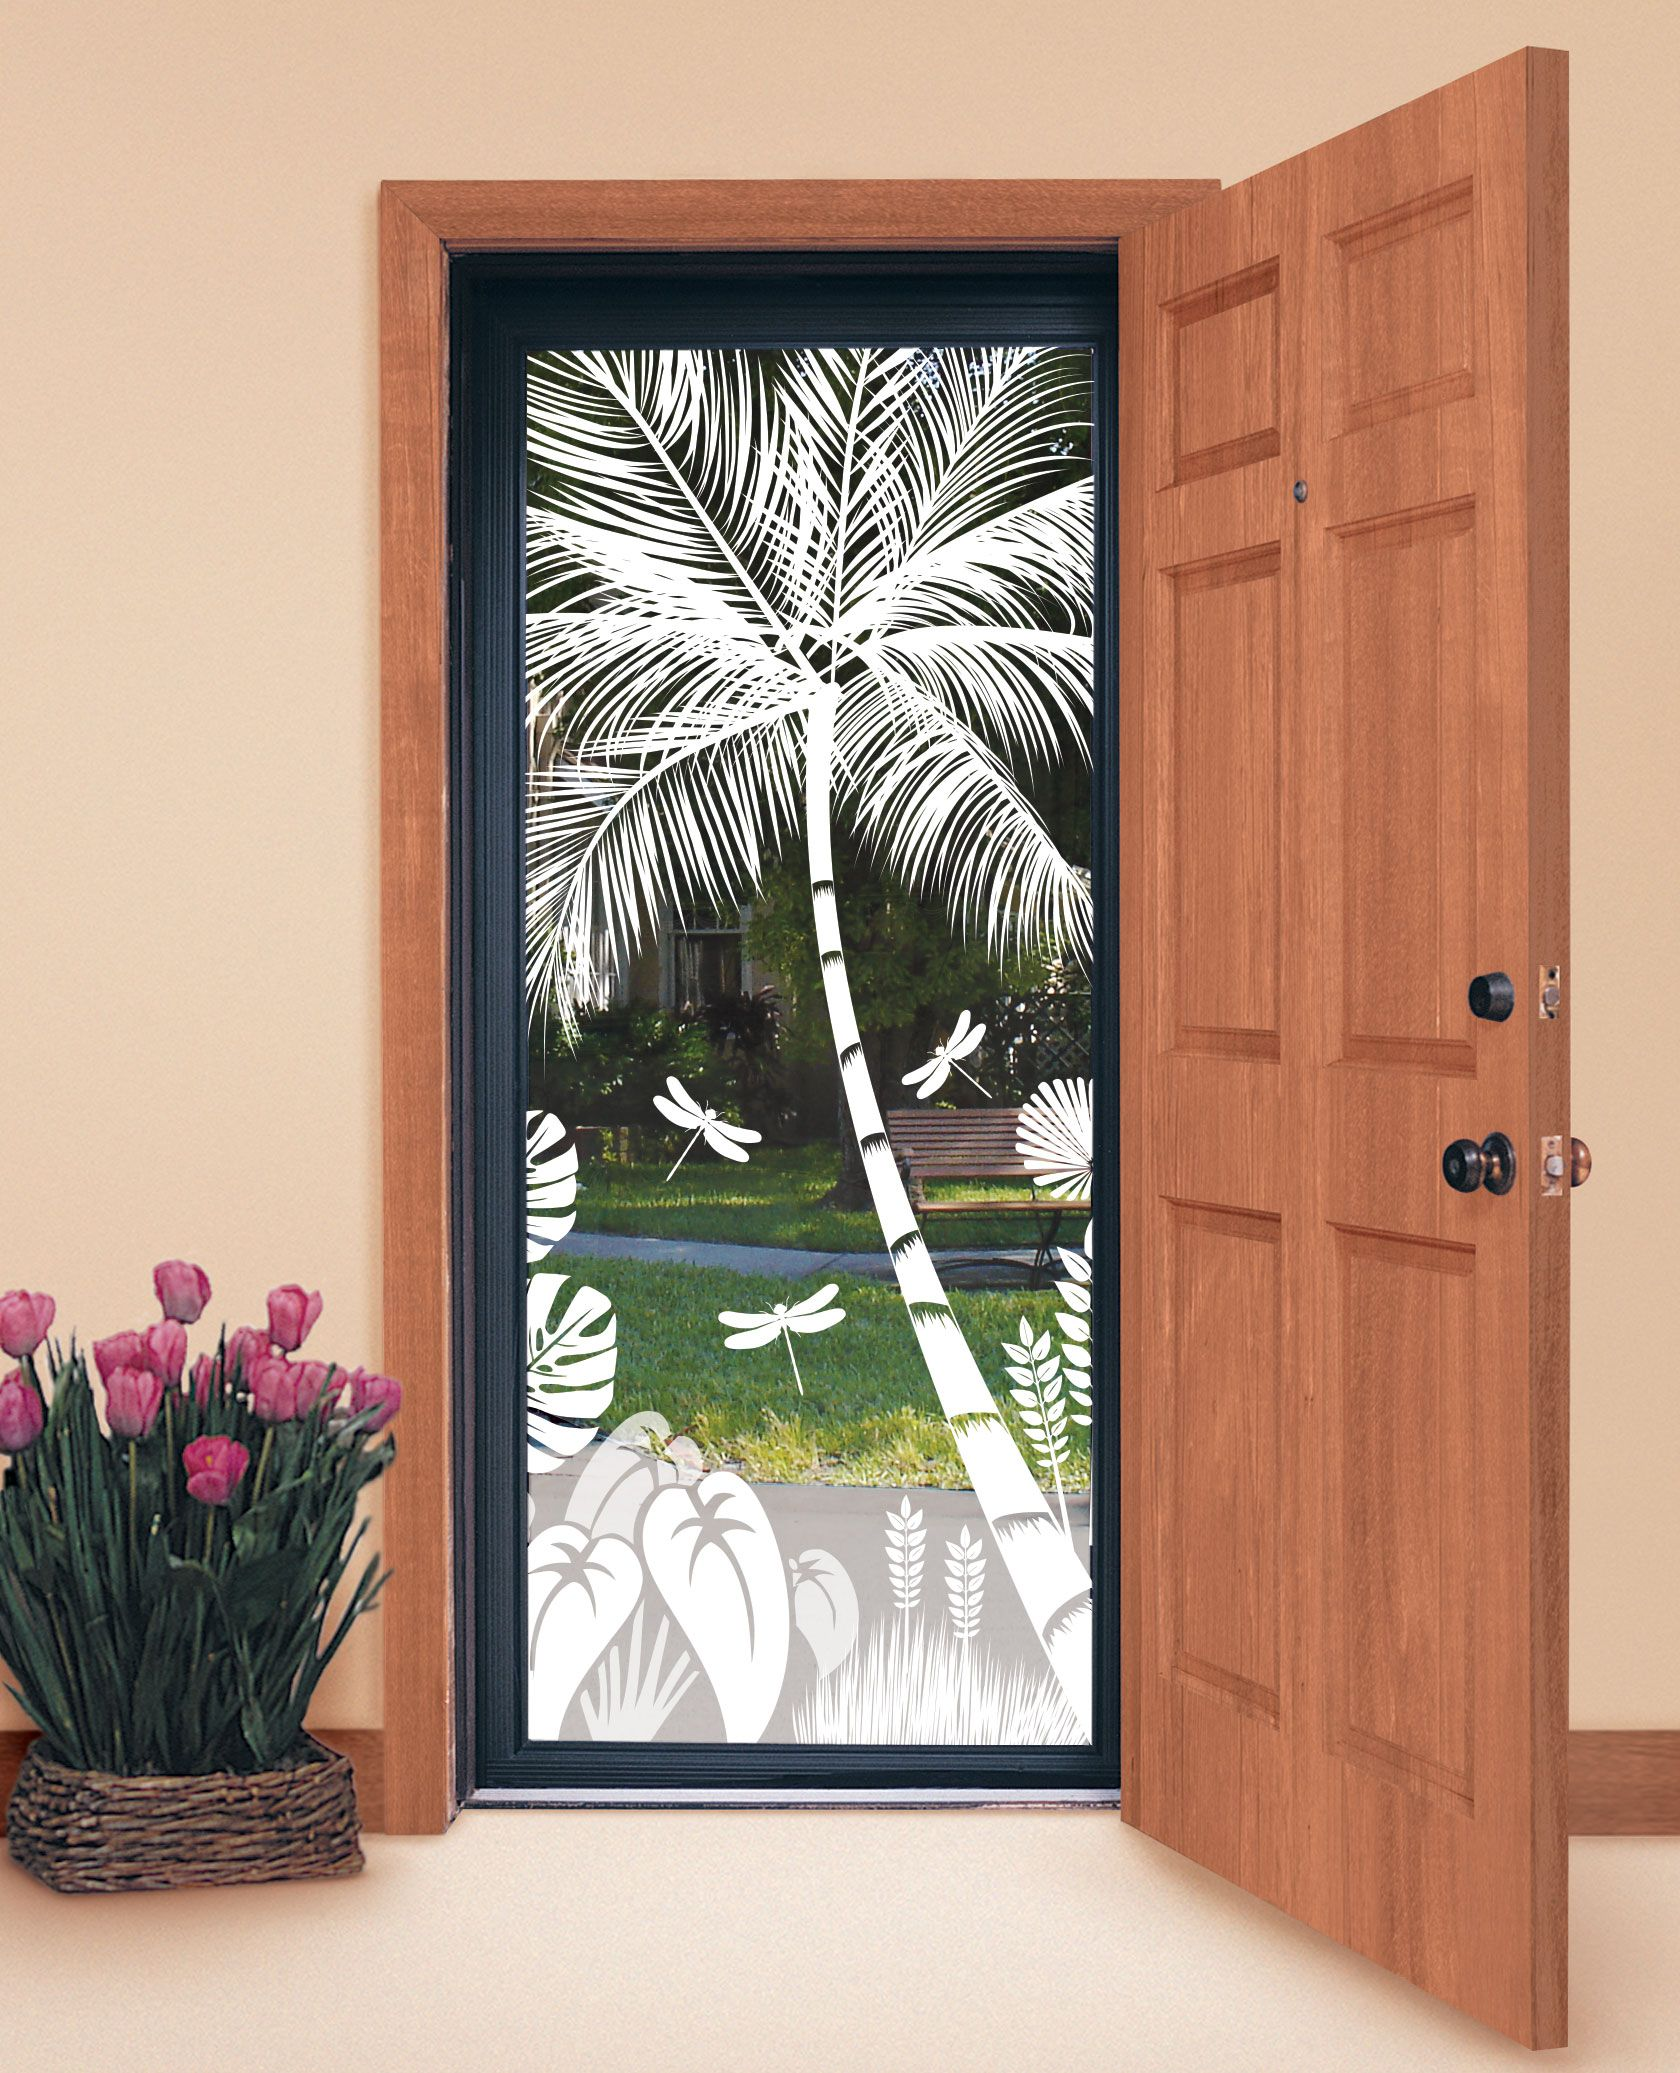 Home glass windows - Design Your Own Tropical Etched Glass Windows And Doors